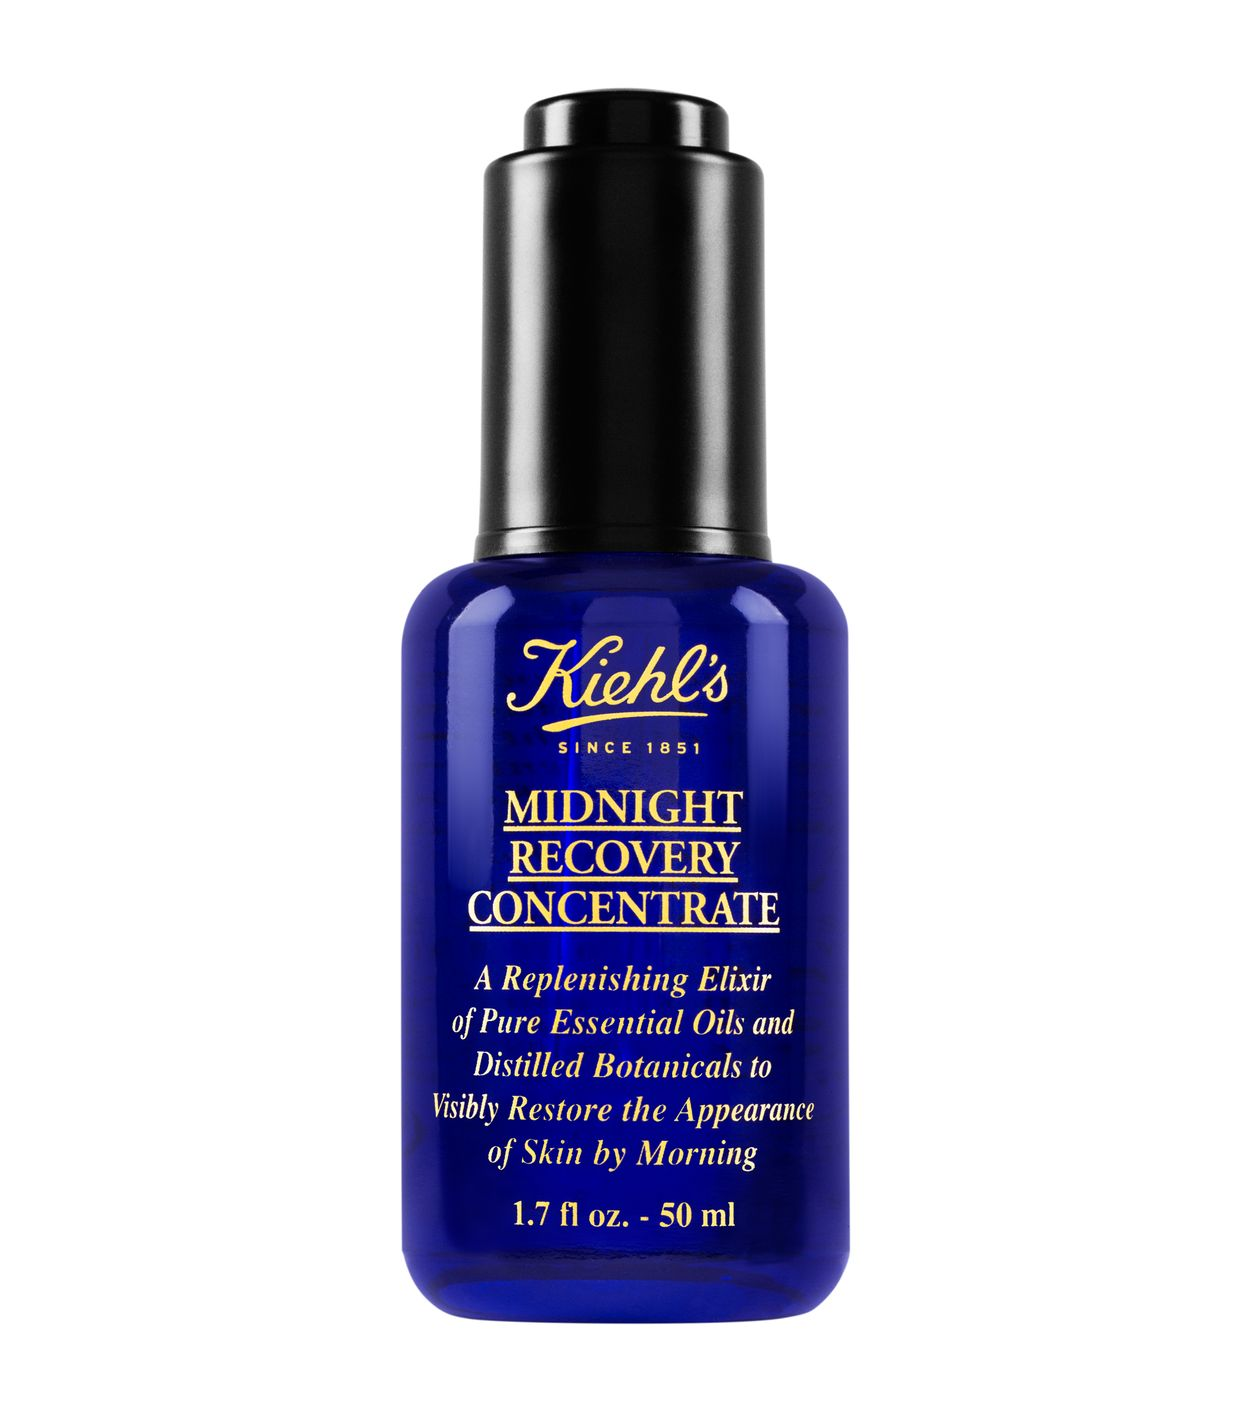 Midnight Recovery Concentrate, Kiehl's, €41